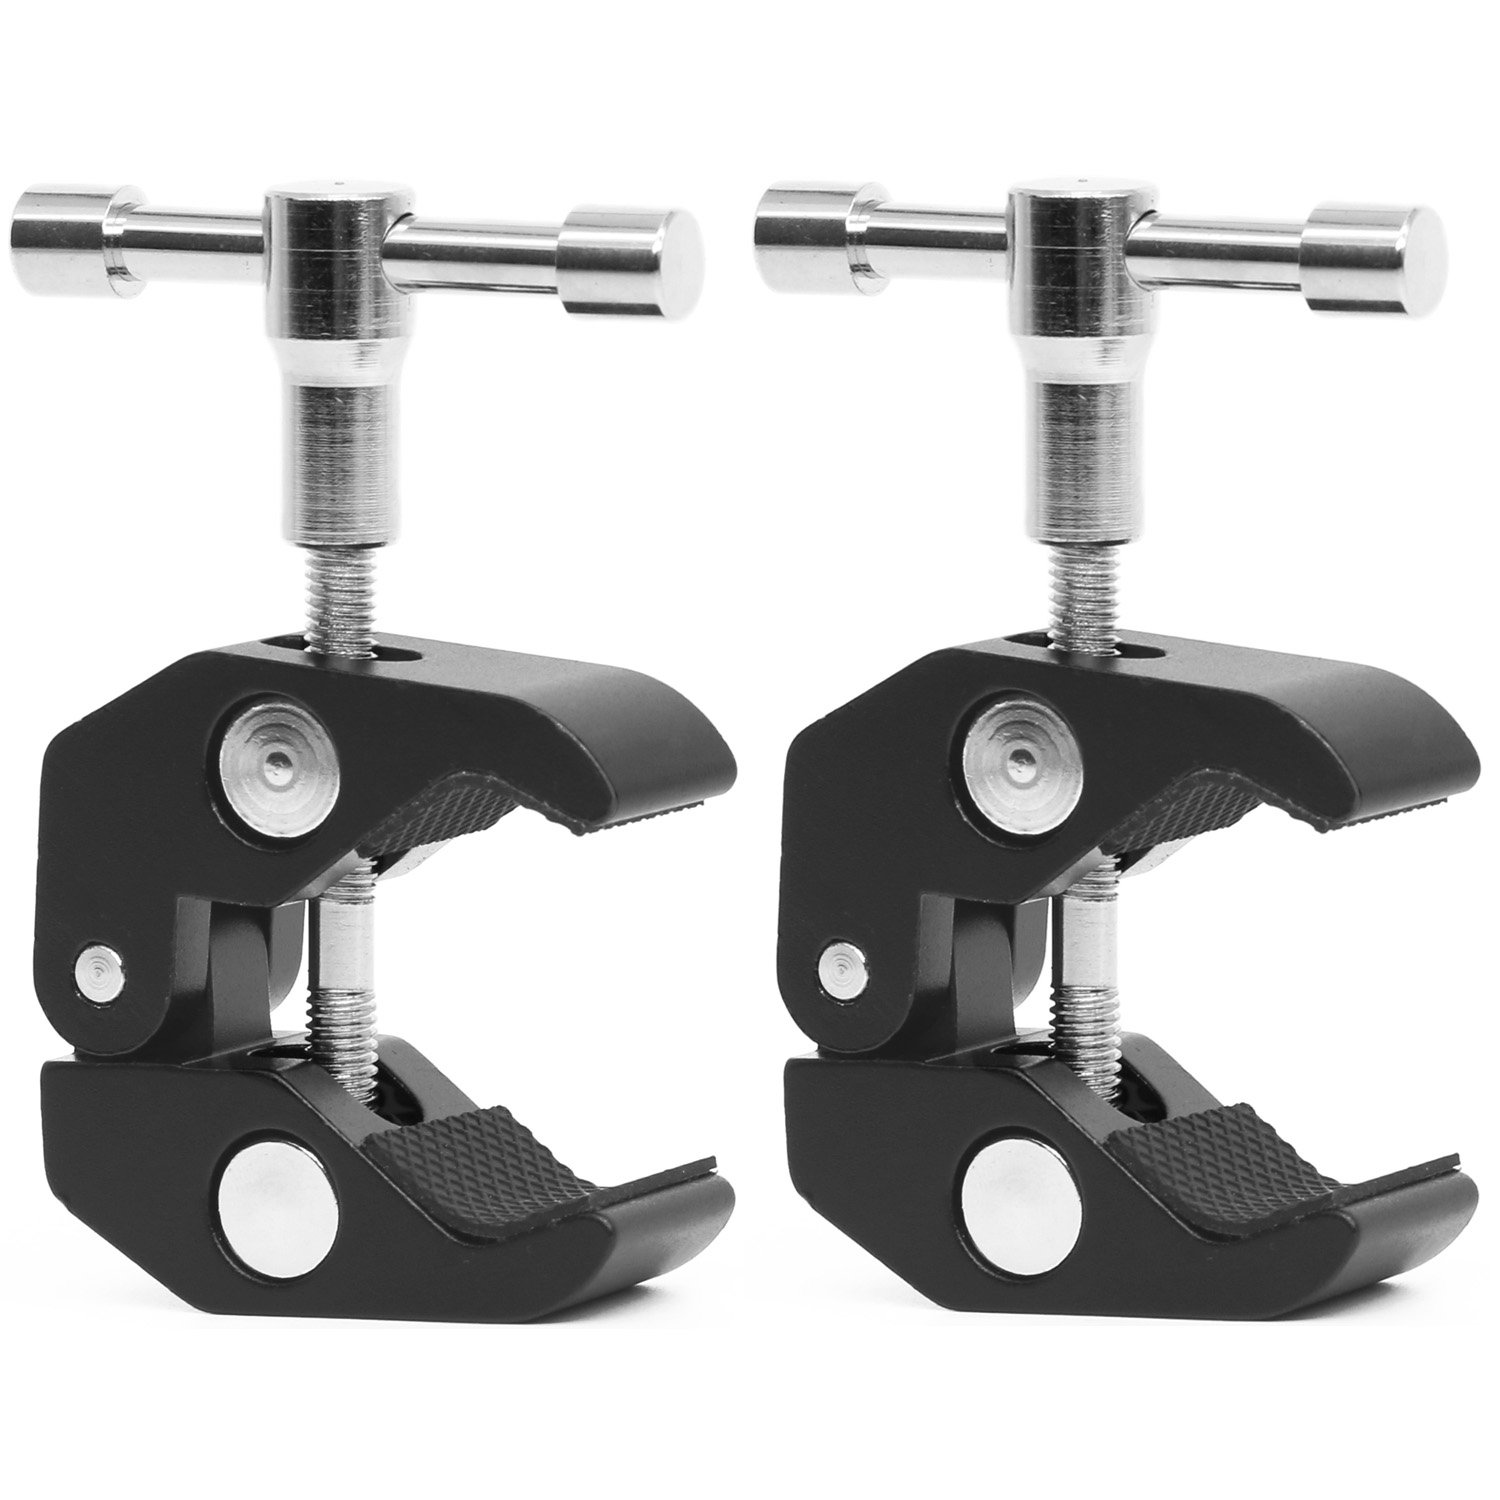 Anwenk 2Pack Super Clamp w/ 1/4''-20 and 3/8''-16 Thread for Cameras, Lights, Umbrellas, Hooks, Shelves, Plate Glass, Cross Bars,Photo Accessories and More